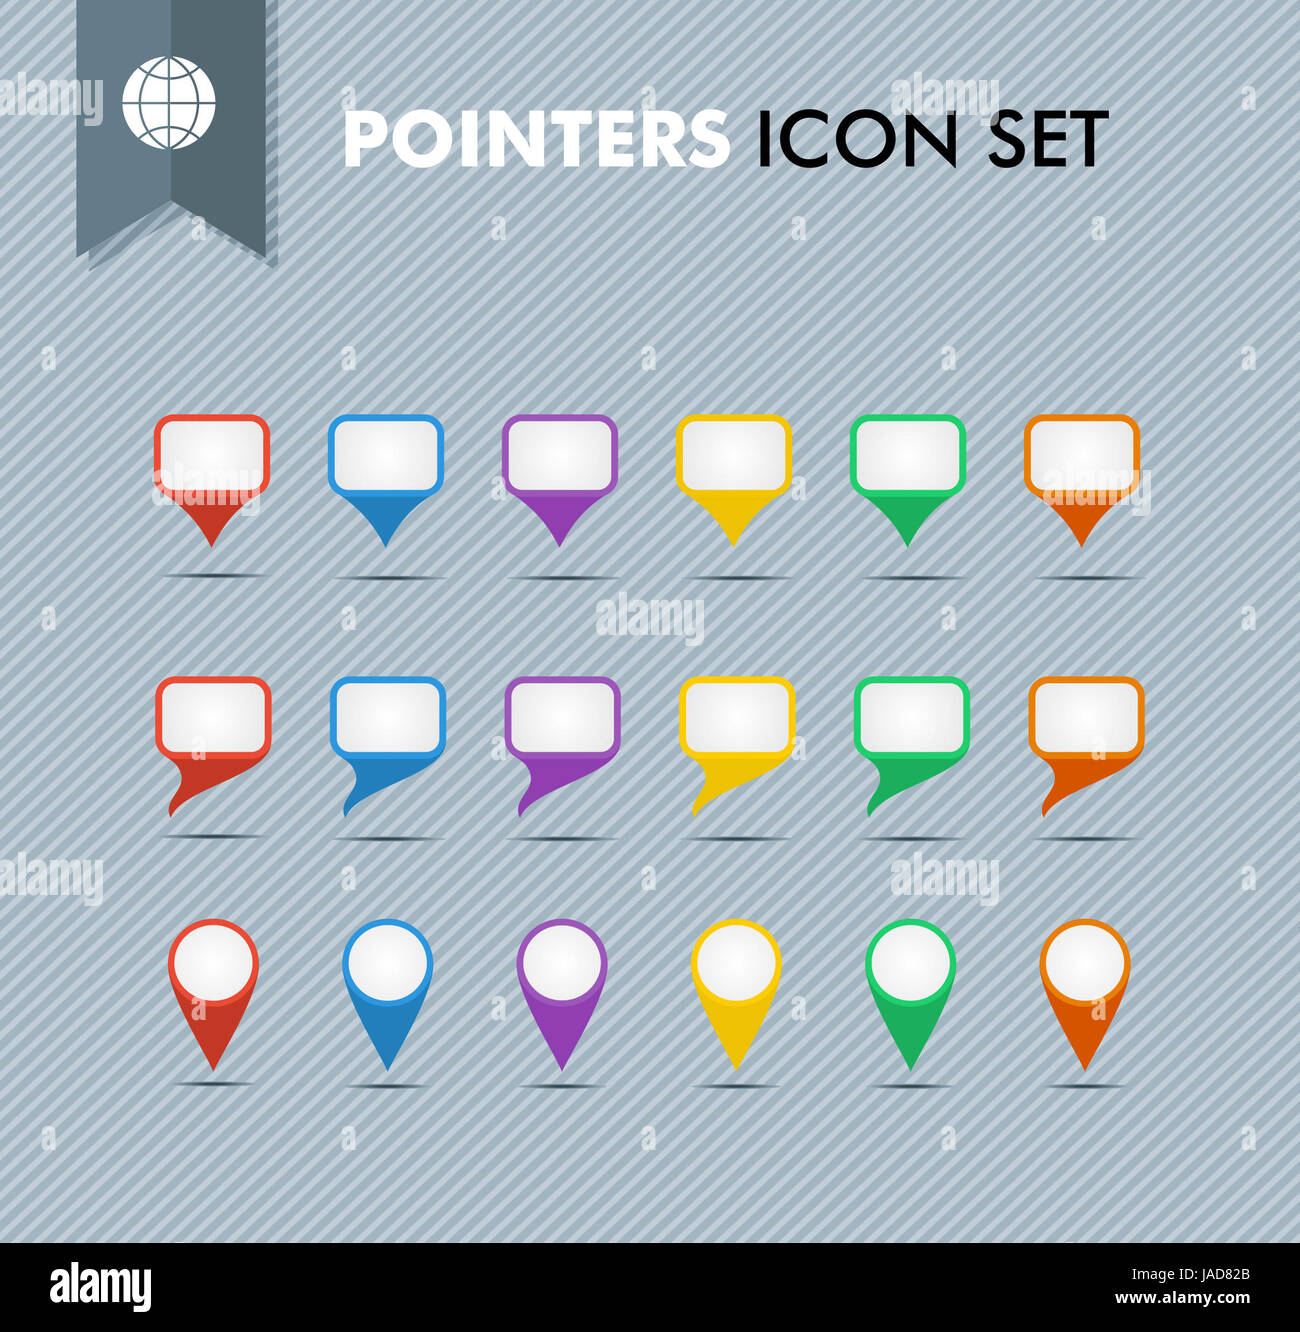 Colorful travel pointer and speech bubbles icon set  EPS10